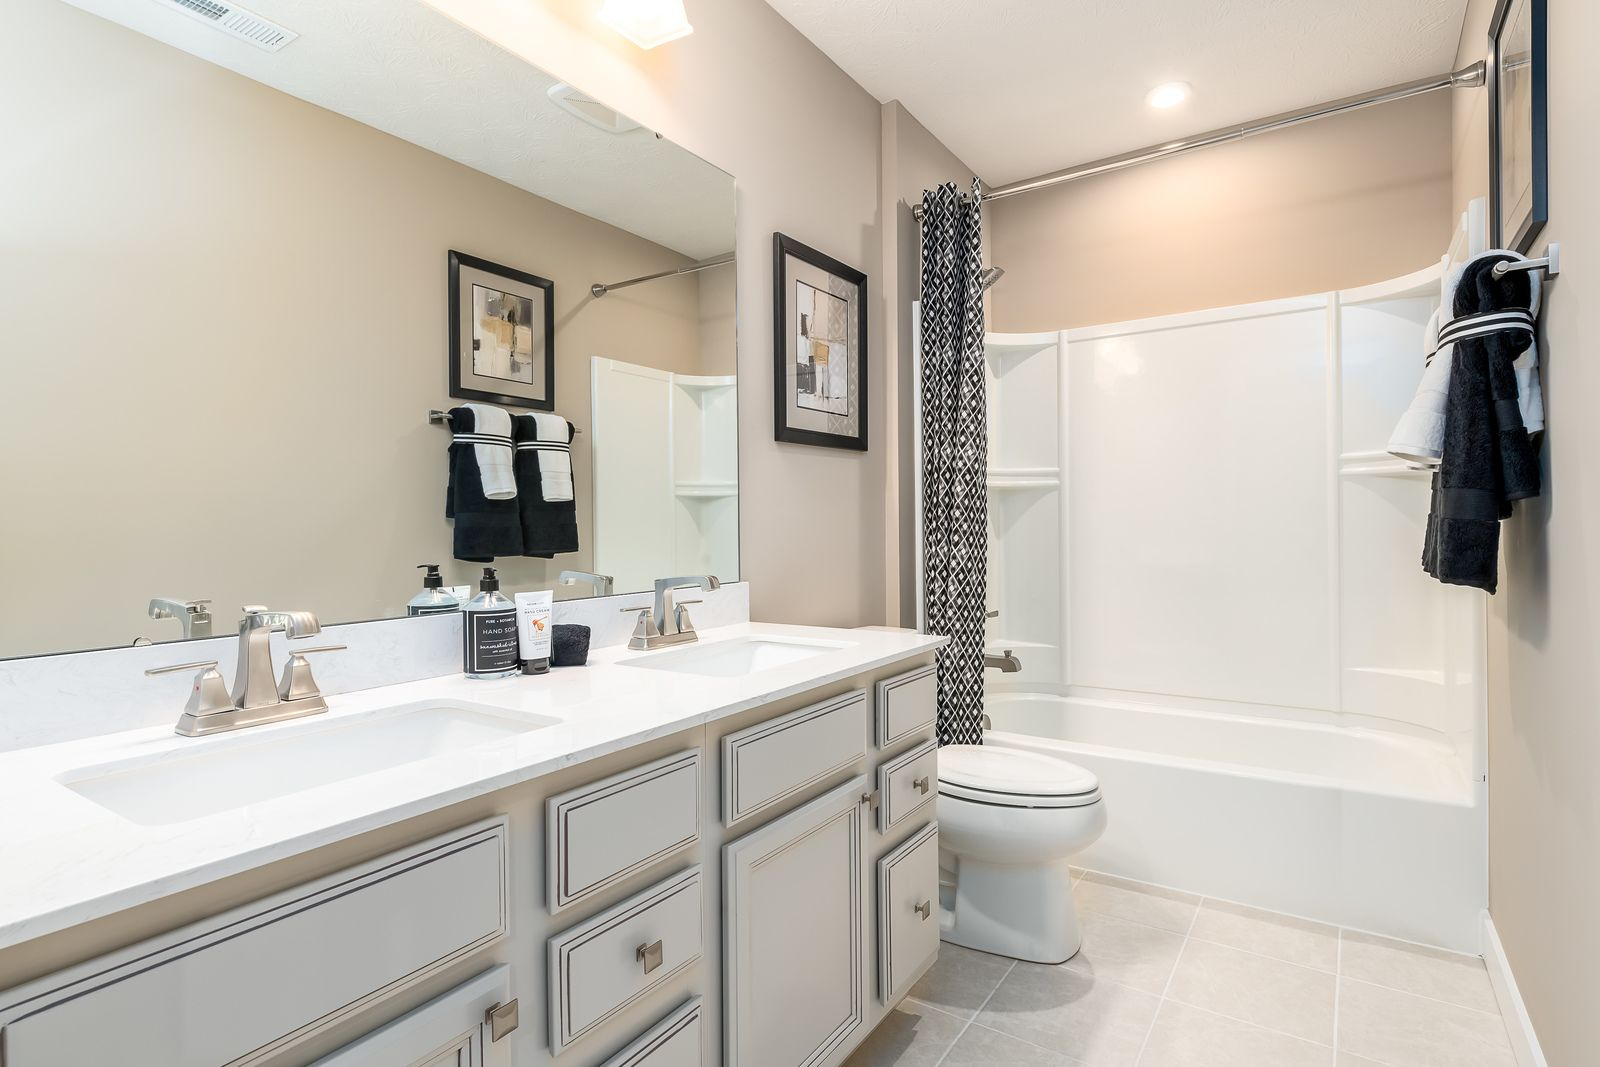 Bathroom featured in the Hudson By Ryan Homes in Charlotte, NC